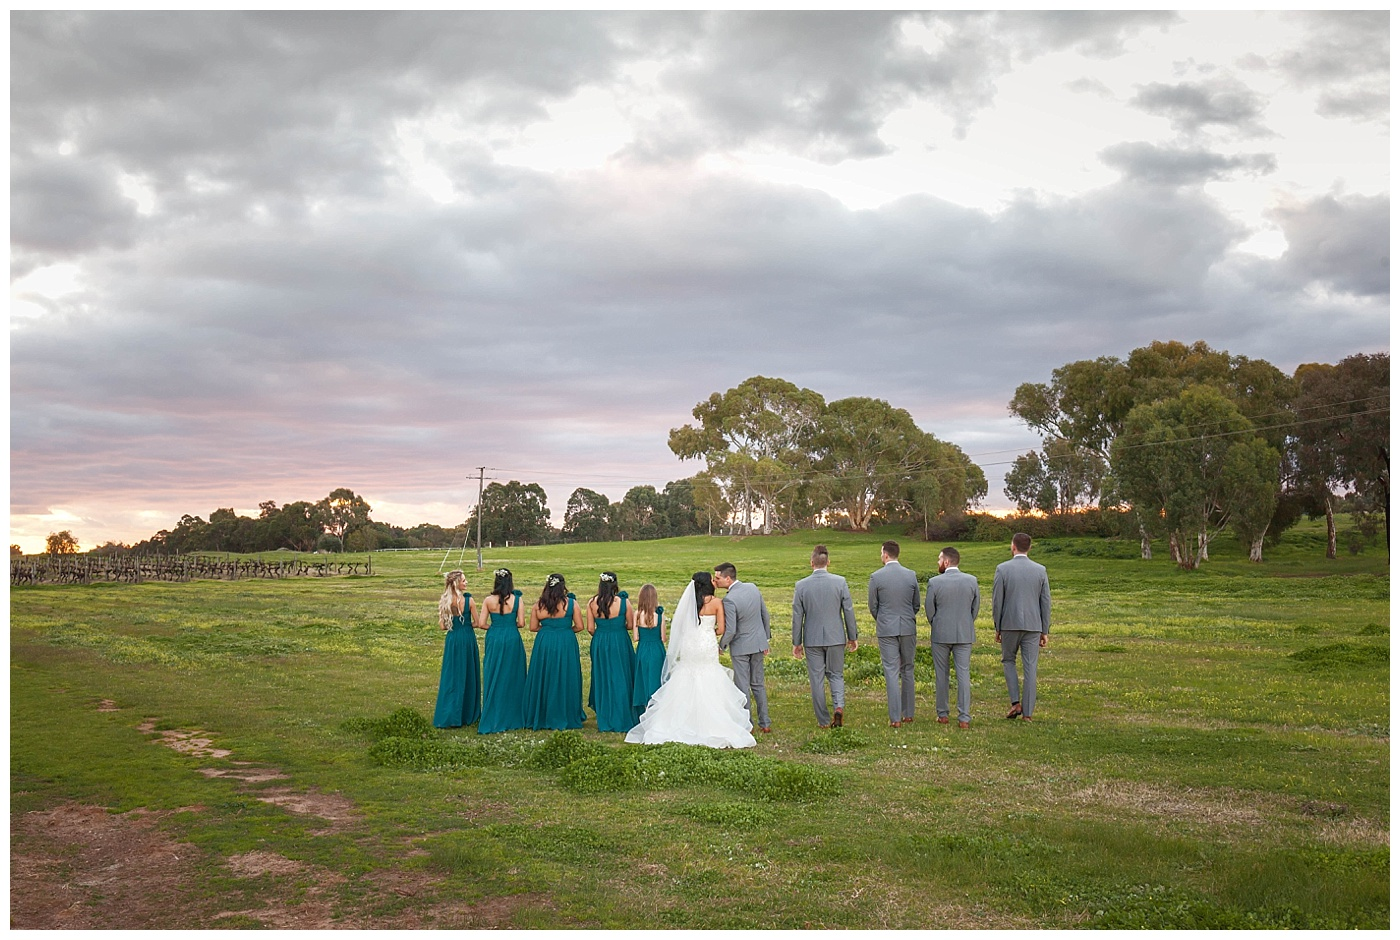 Bridal Party with epic sky at Sandalford Winery in The Swan Valley